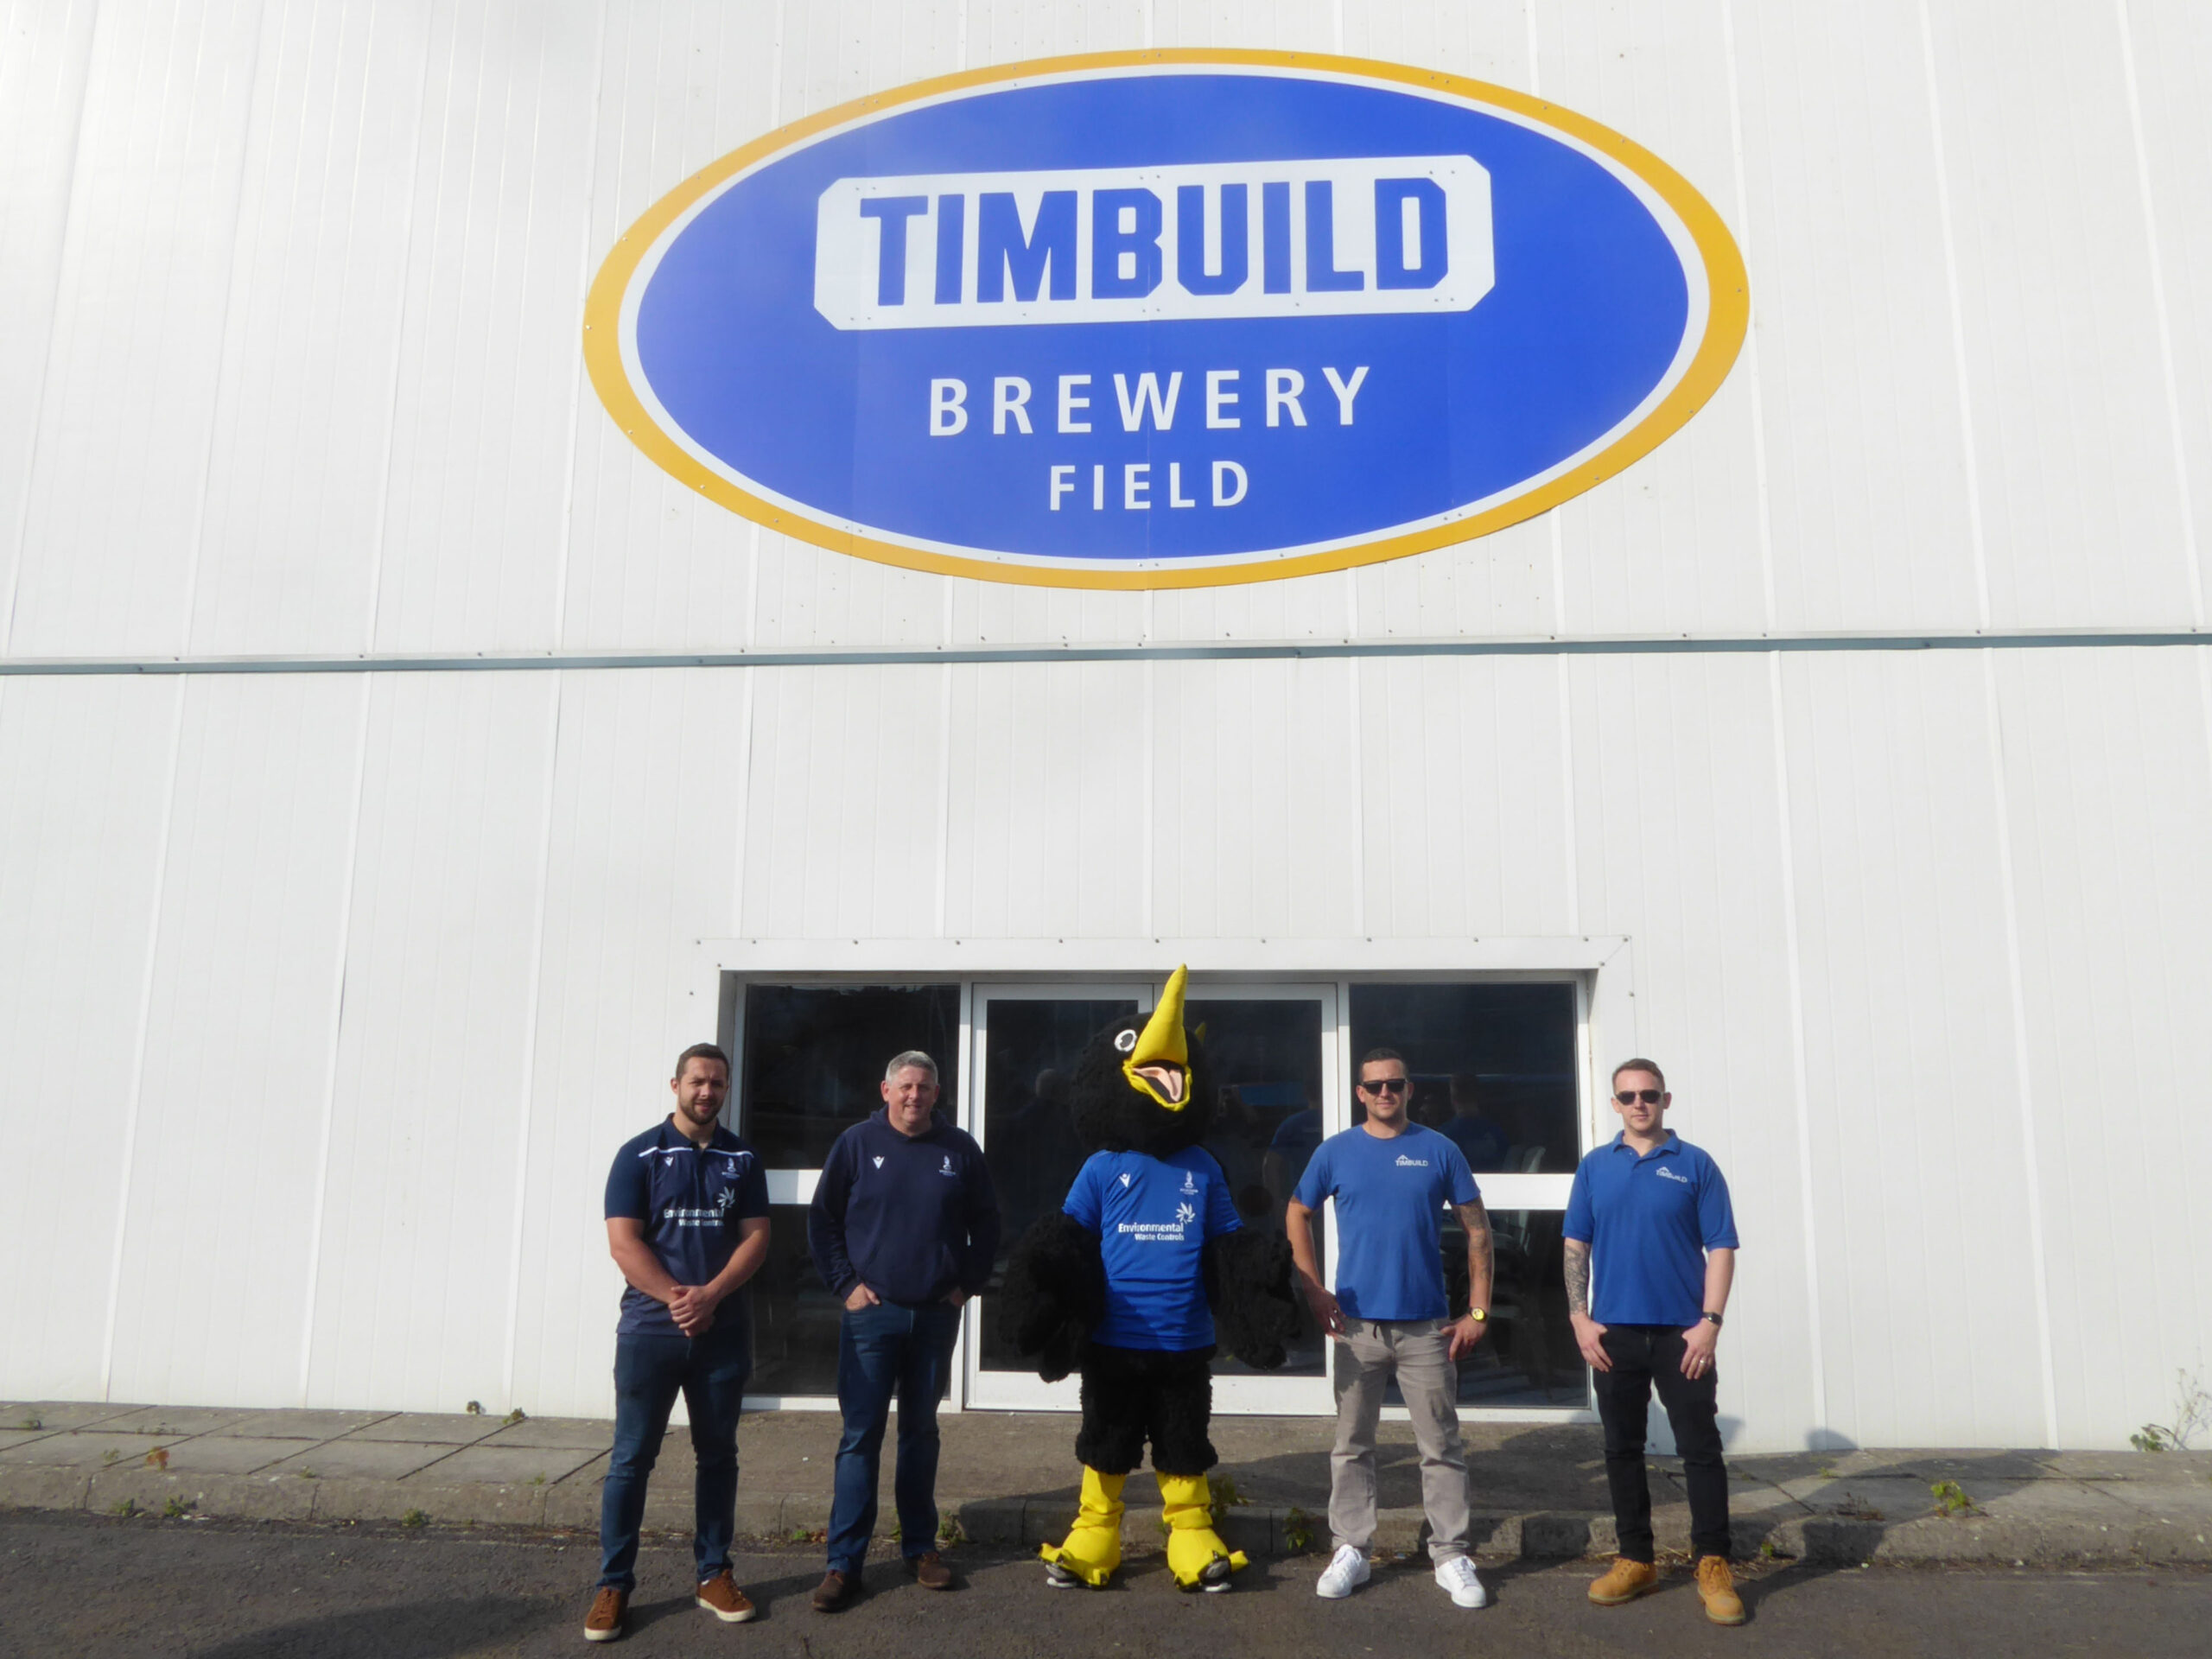 Timbuild Brewery Field